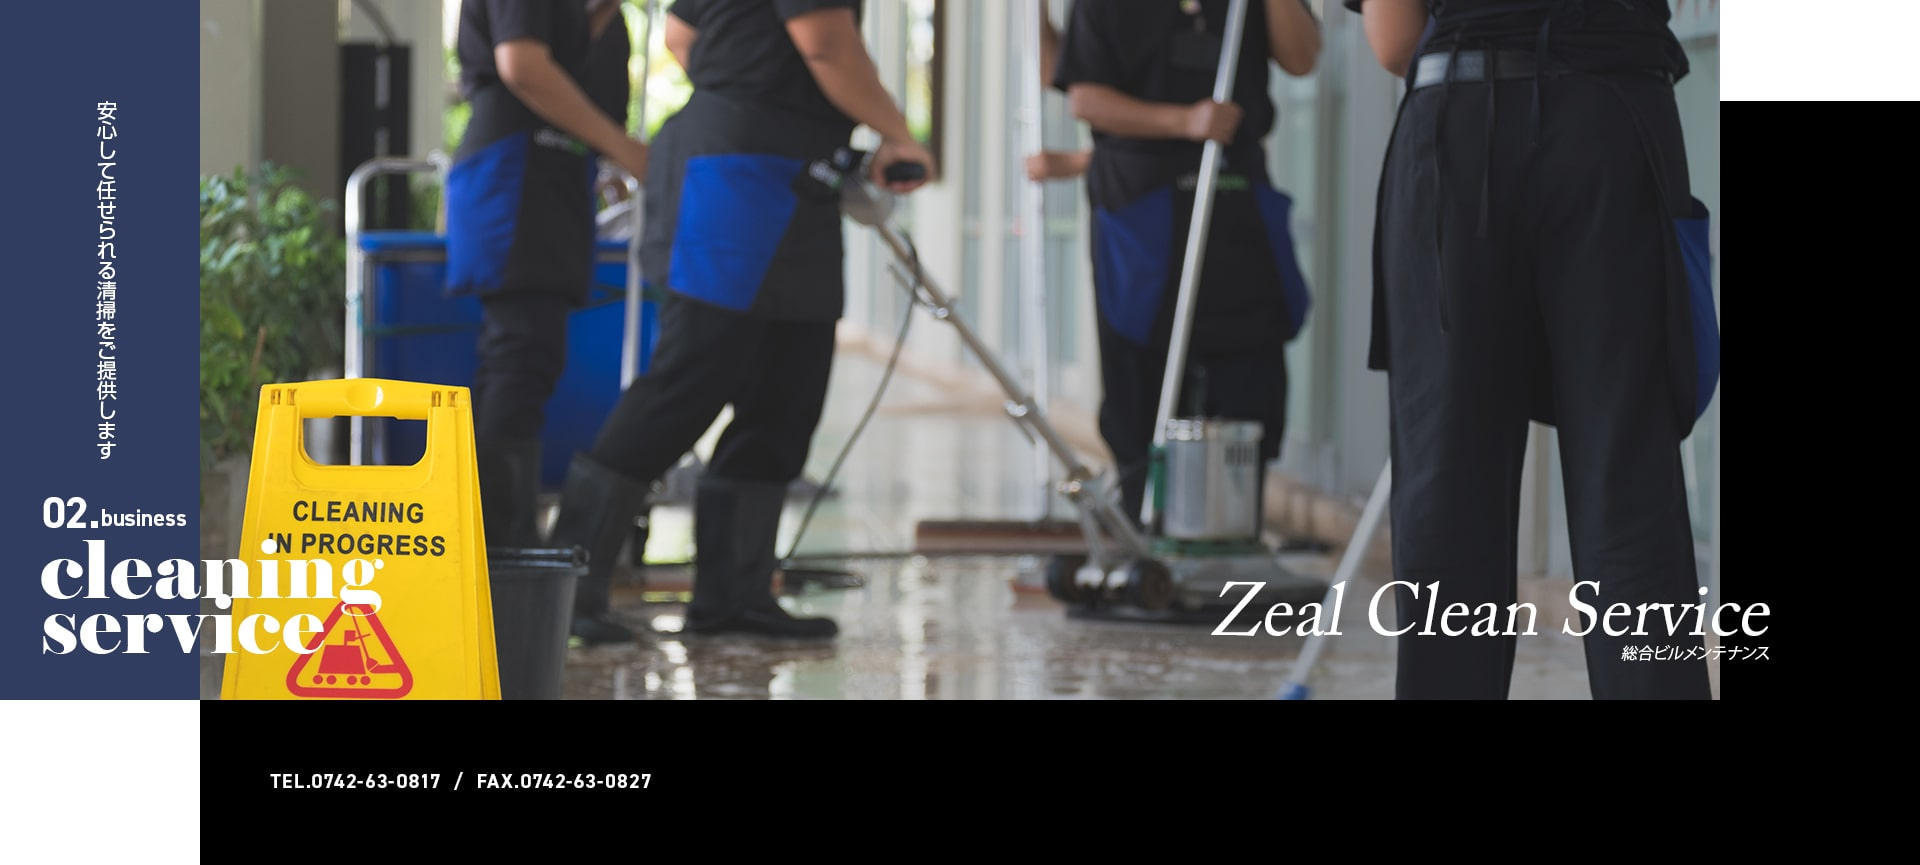 Zeal Clean Service 安心して任せられる清掃をご提供します 02.business cleaning service TEL:0742-63-0817 FAX:0742-63-0827 総合ビルメンテナンス